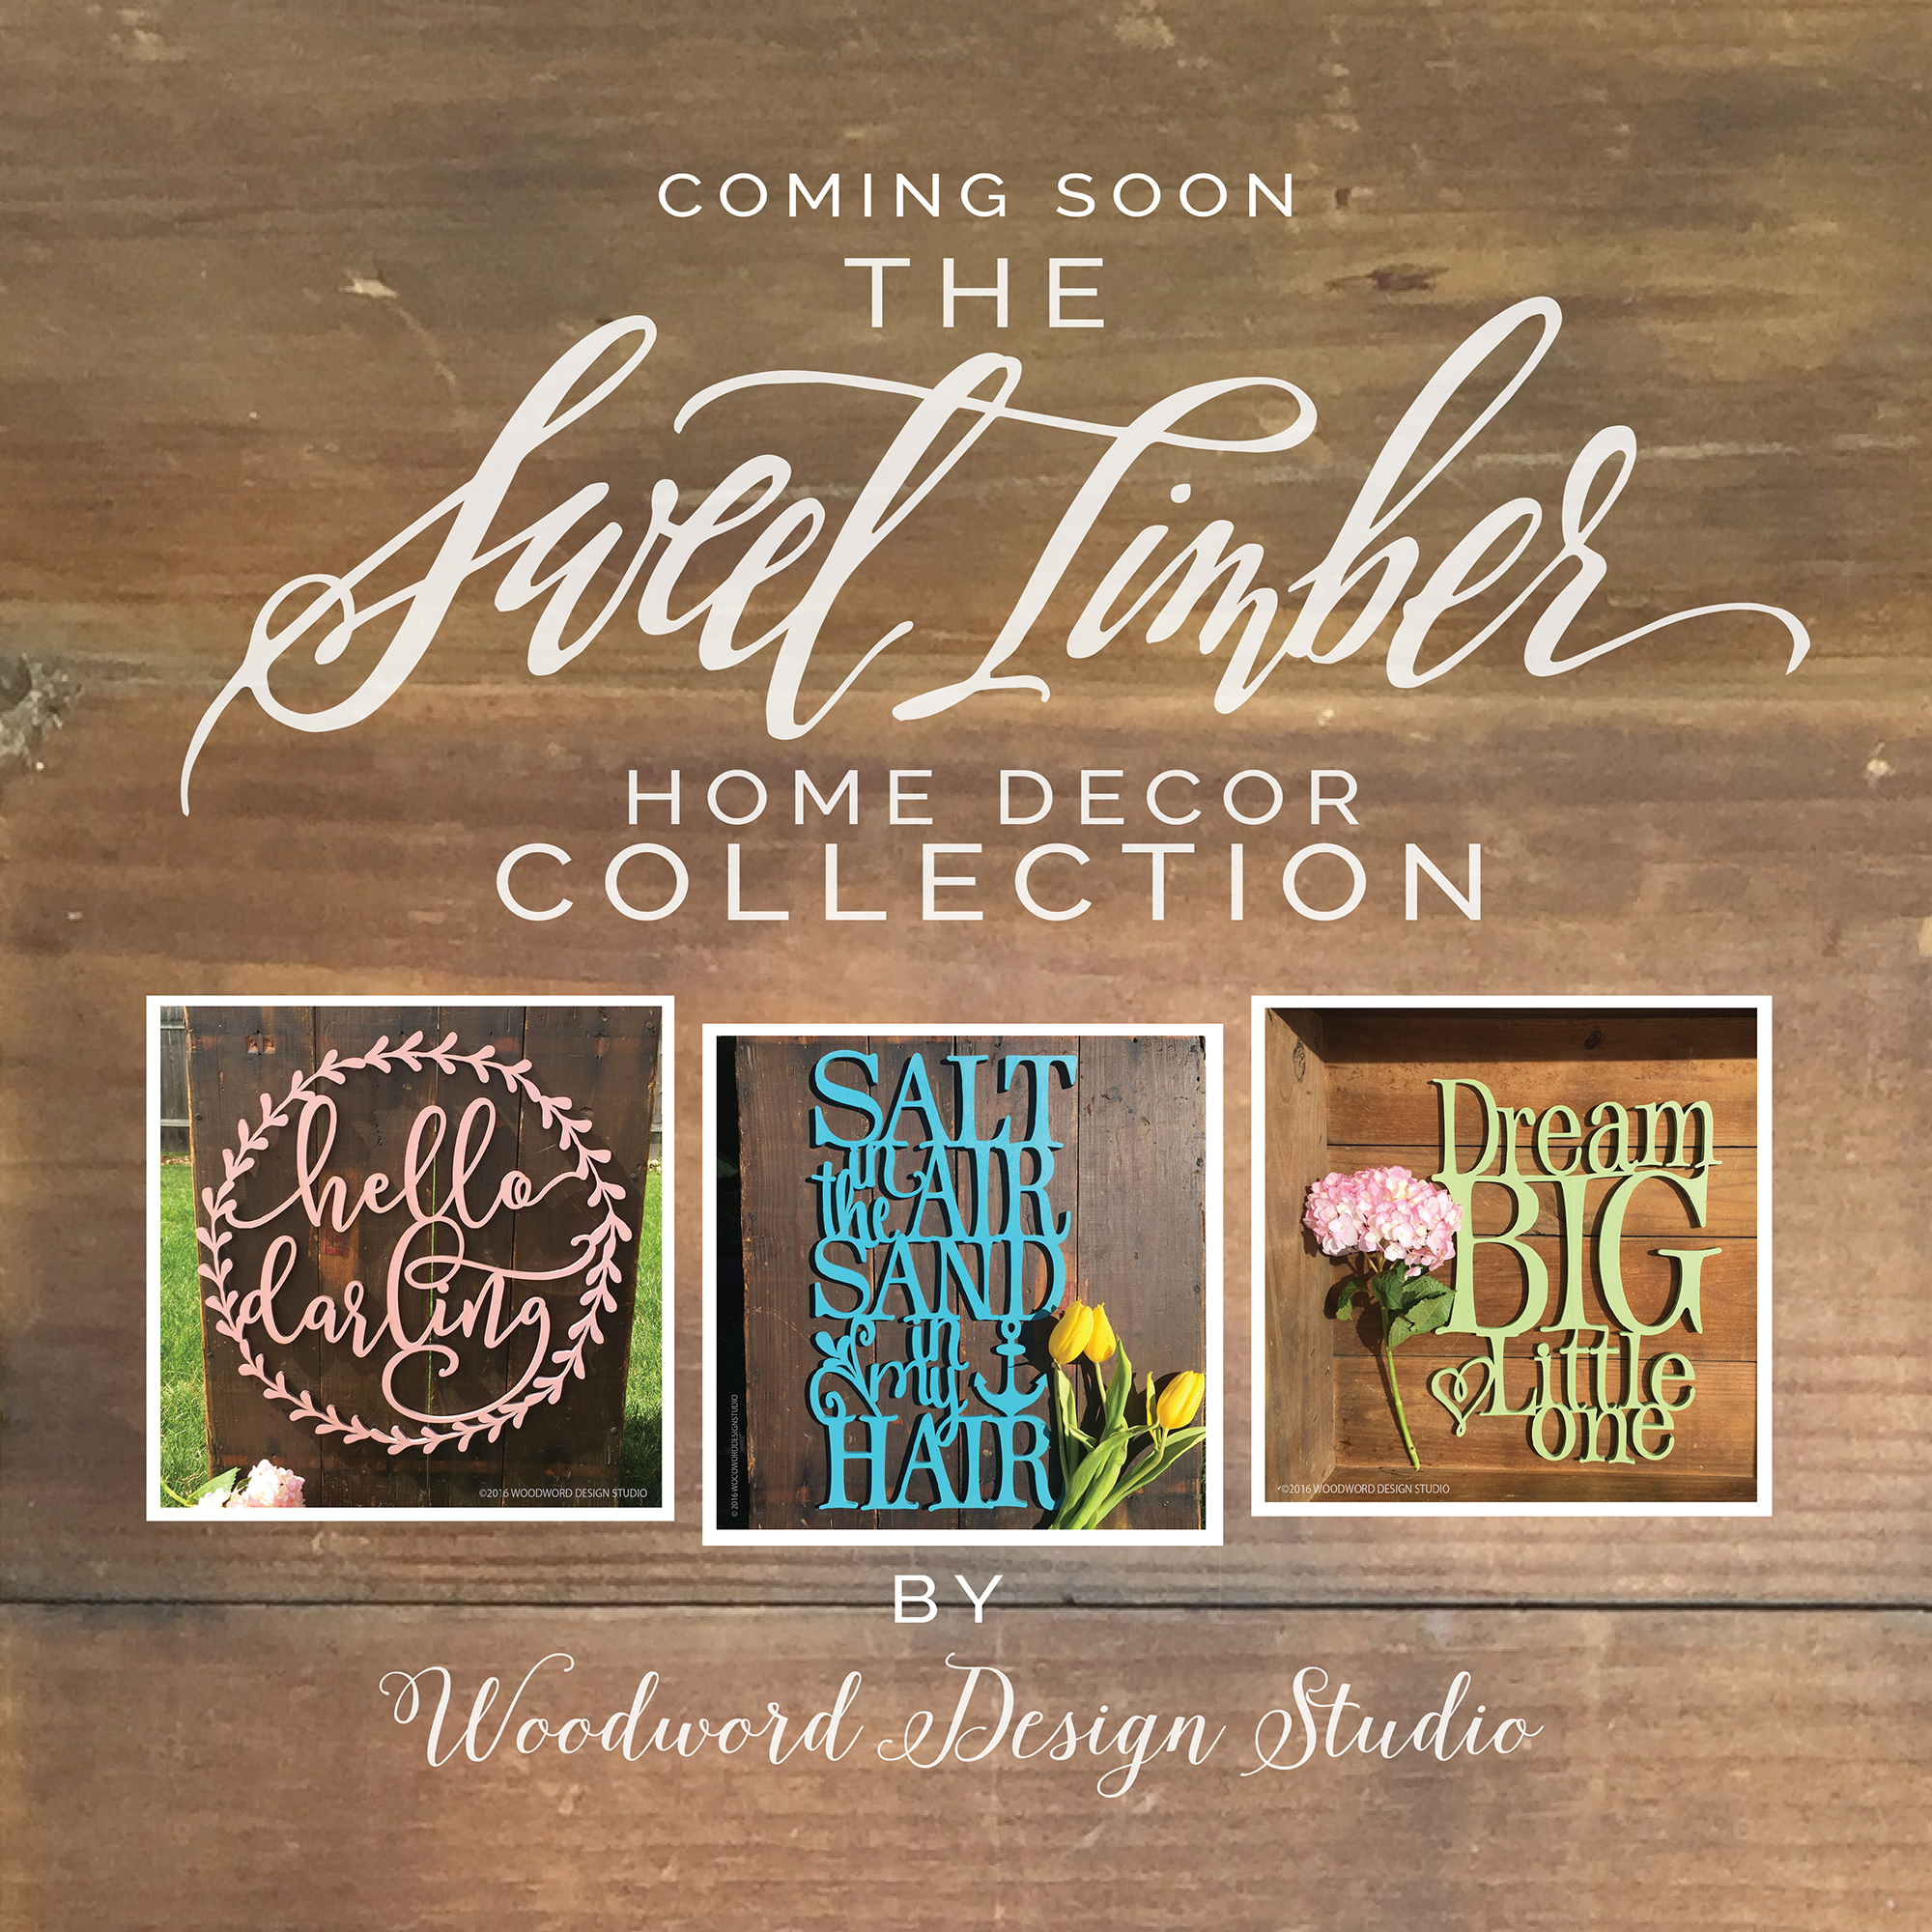 Love Words And Quotes Woodword Design Studio Launching Sweet Timber Collection Of Laser Cut Home Decor Signs Newswire